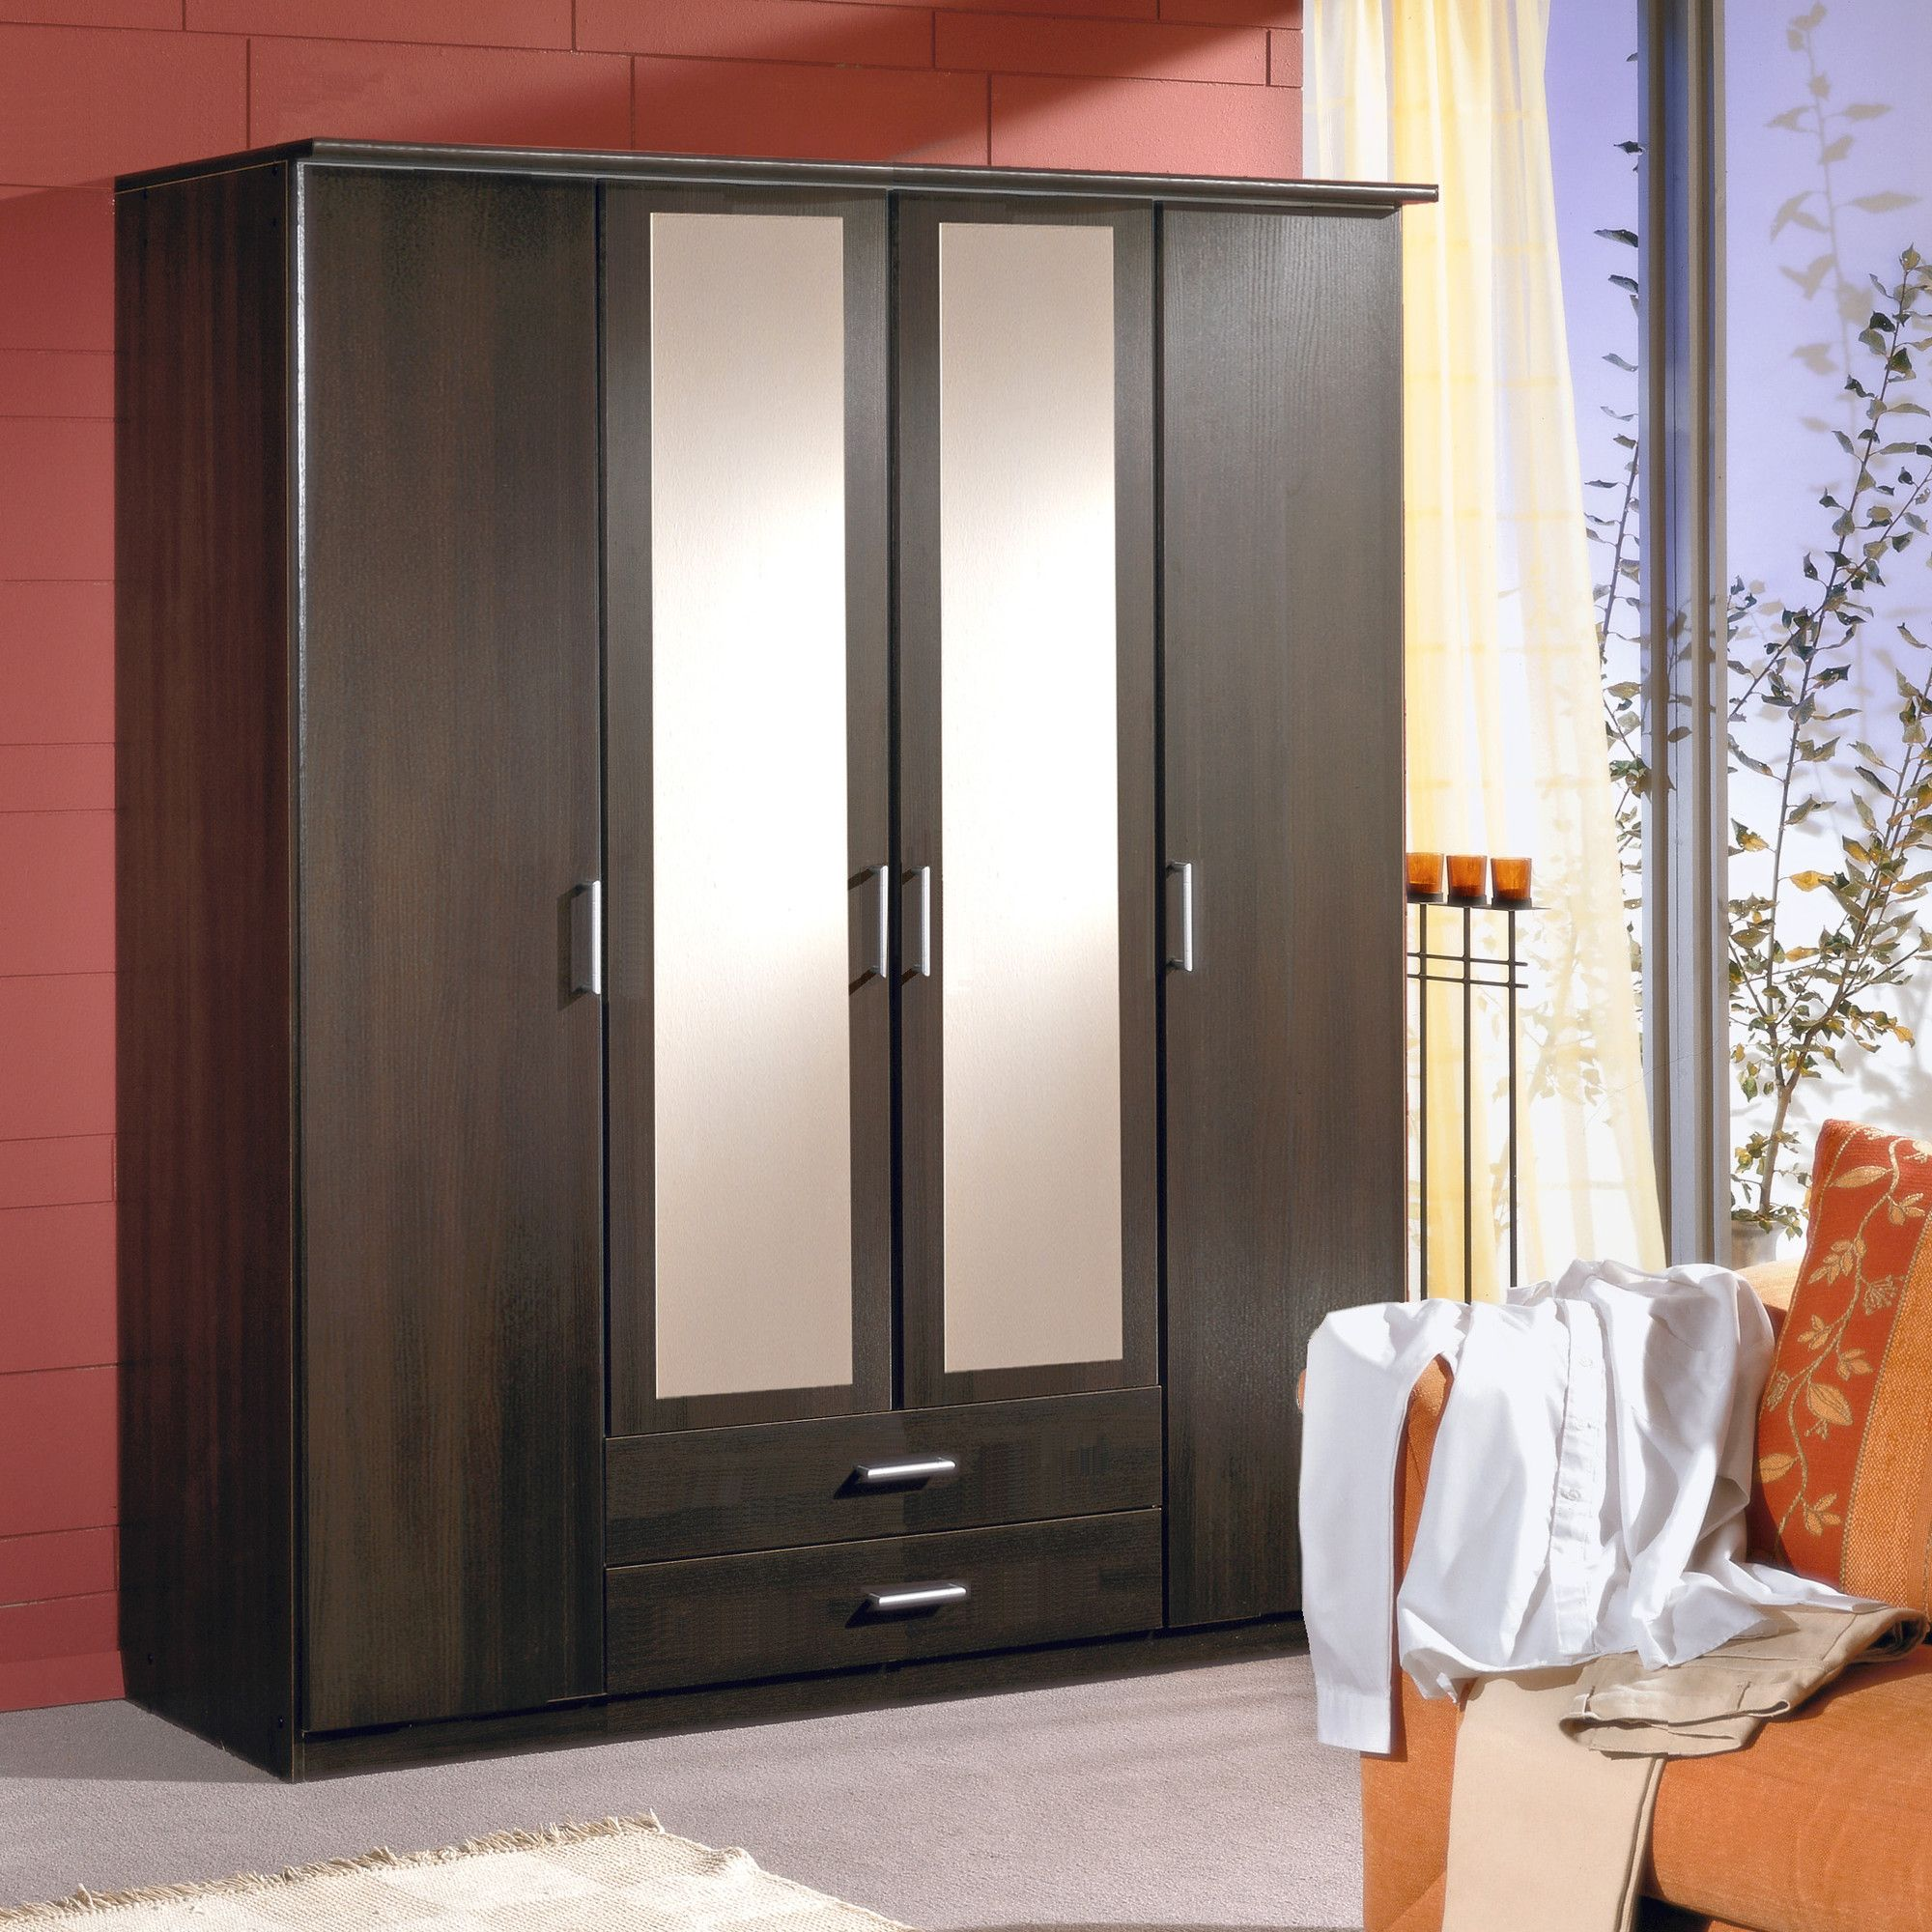 Amos Mann furniture Venice 4 Door 2 Drawer Wardrobe - Wenge at Tesco Direct